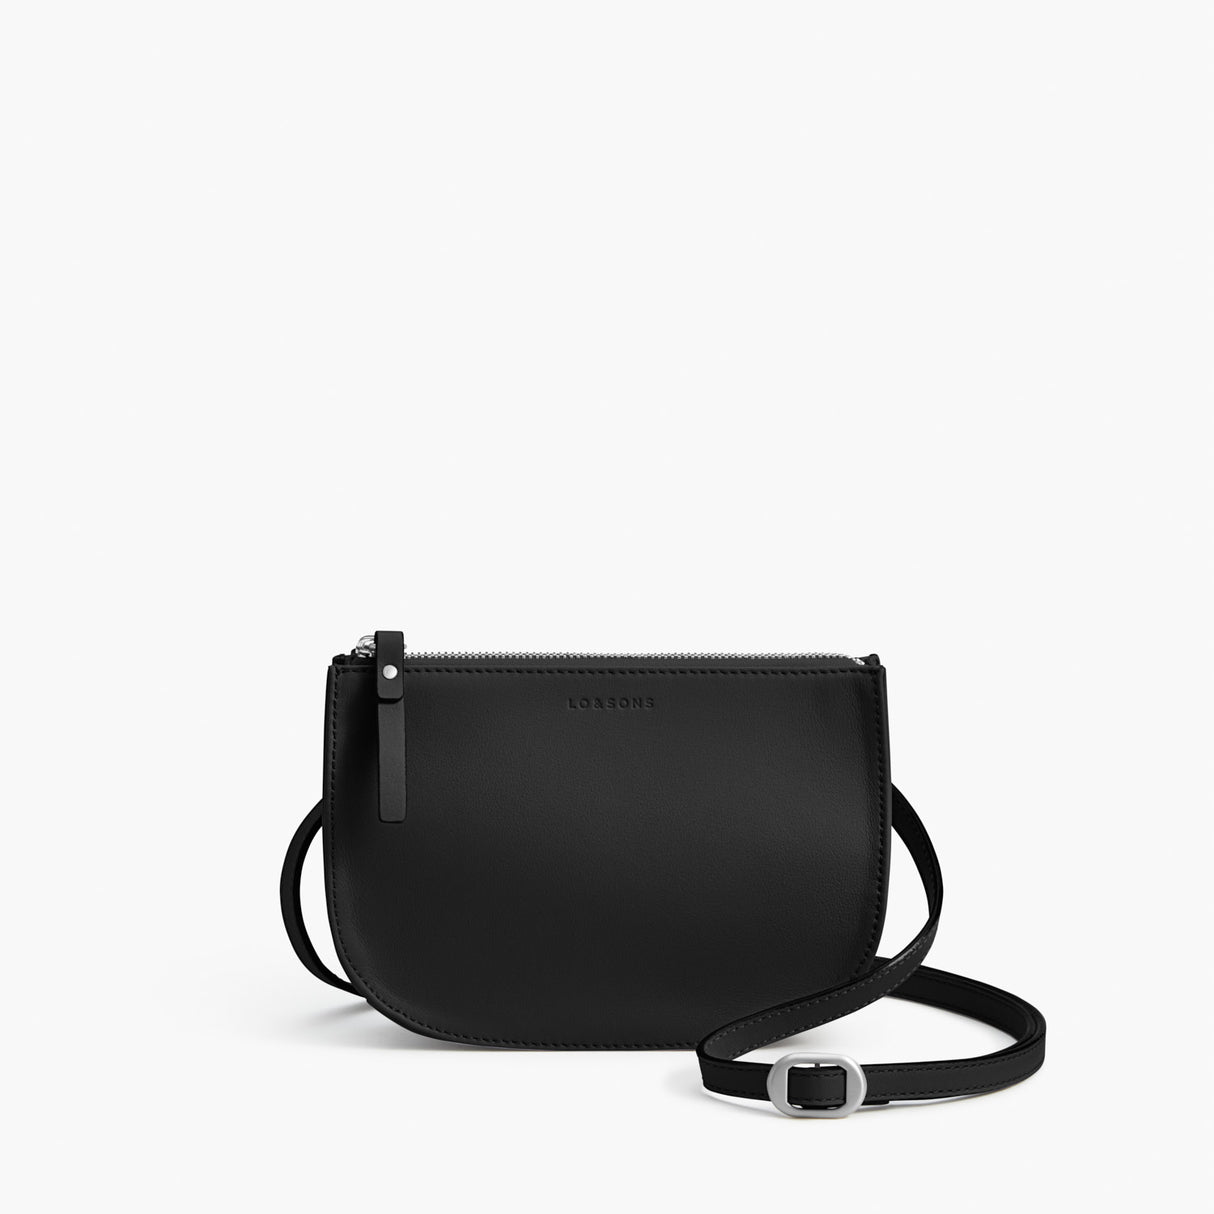 Front - Waverley 2 - Nappa Leather - Black / Silver / Grey - Crossbody Bag - Lo & Sons